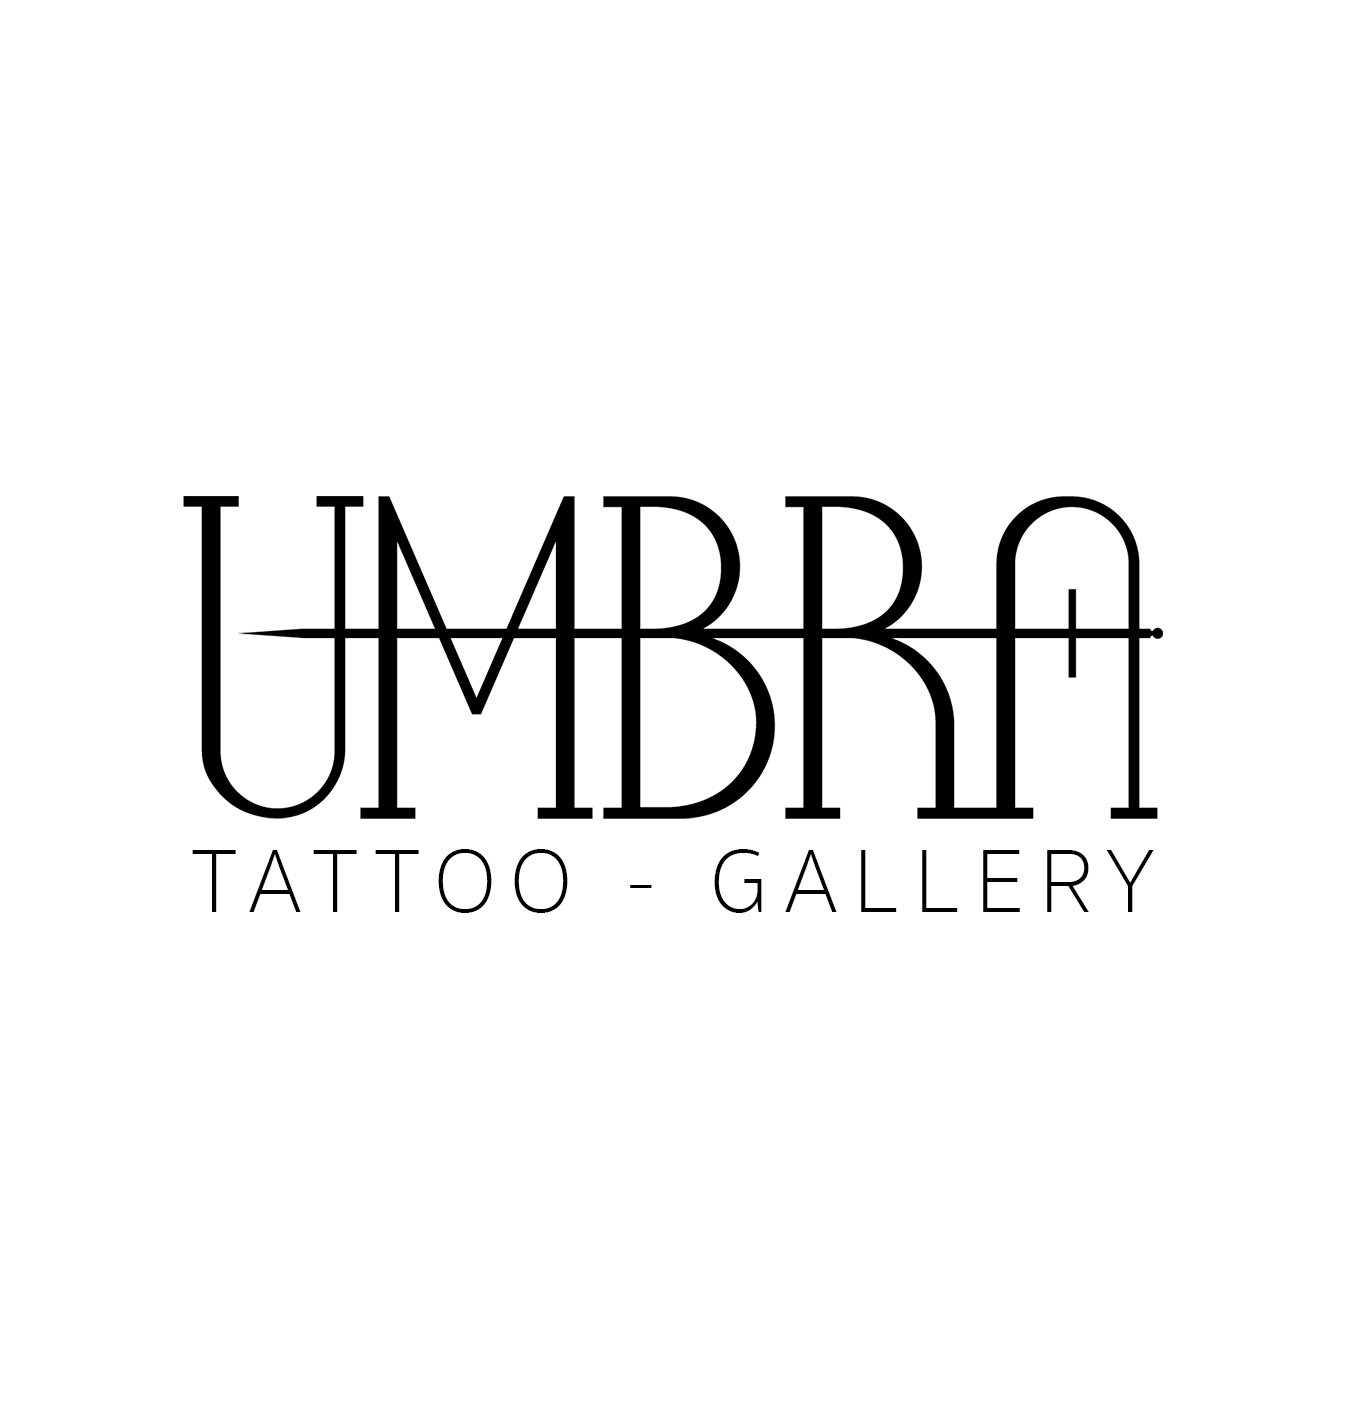 Umbra Tattoo Gallery